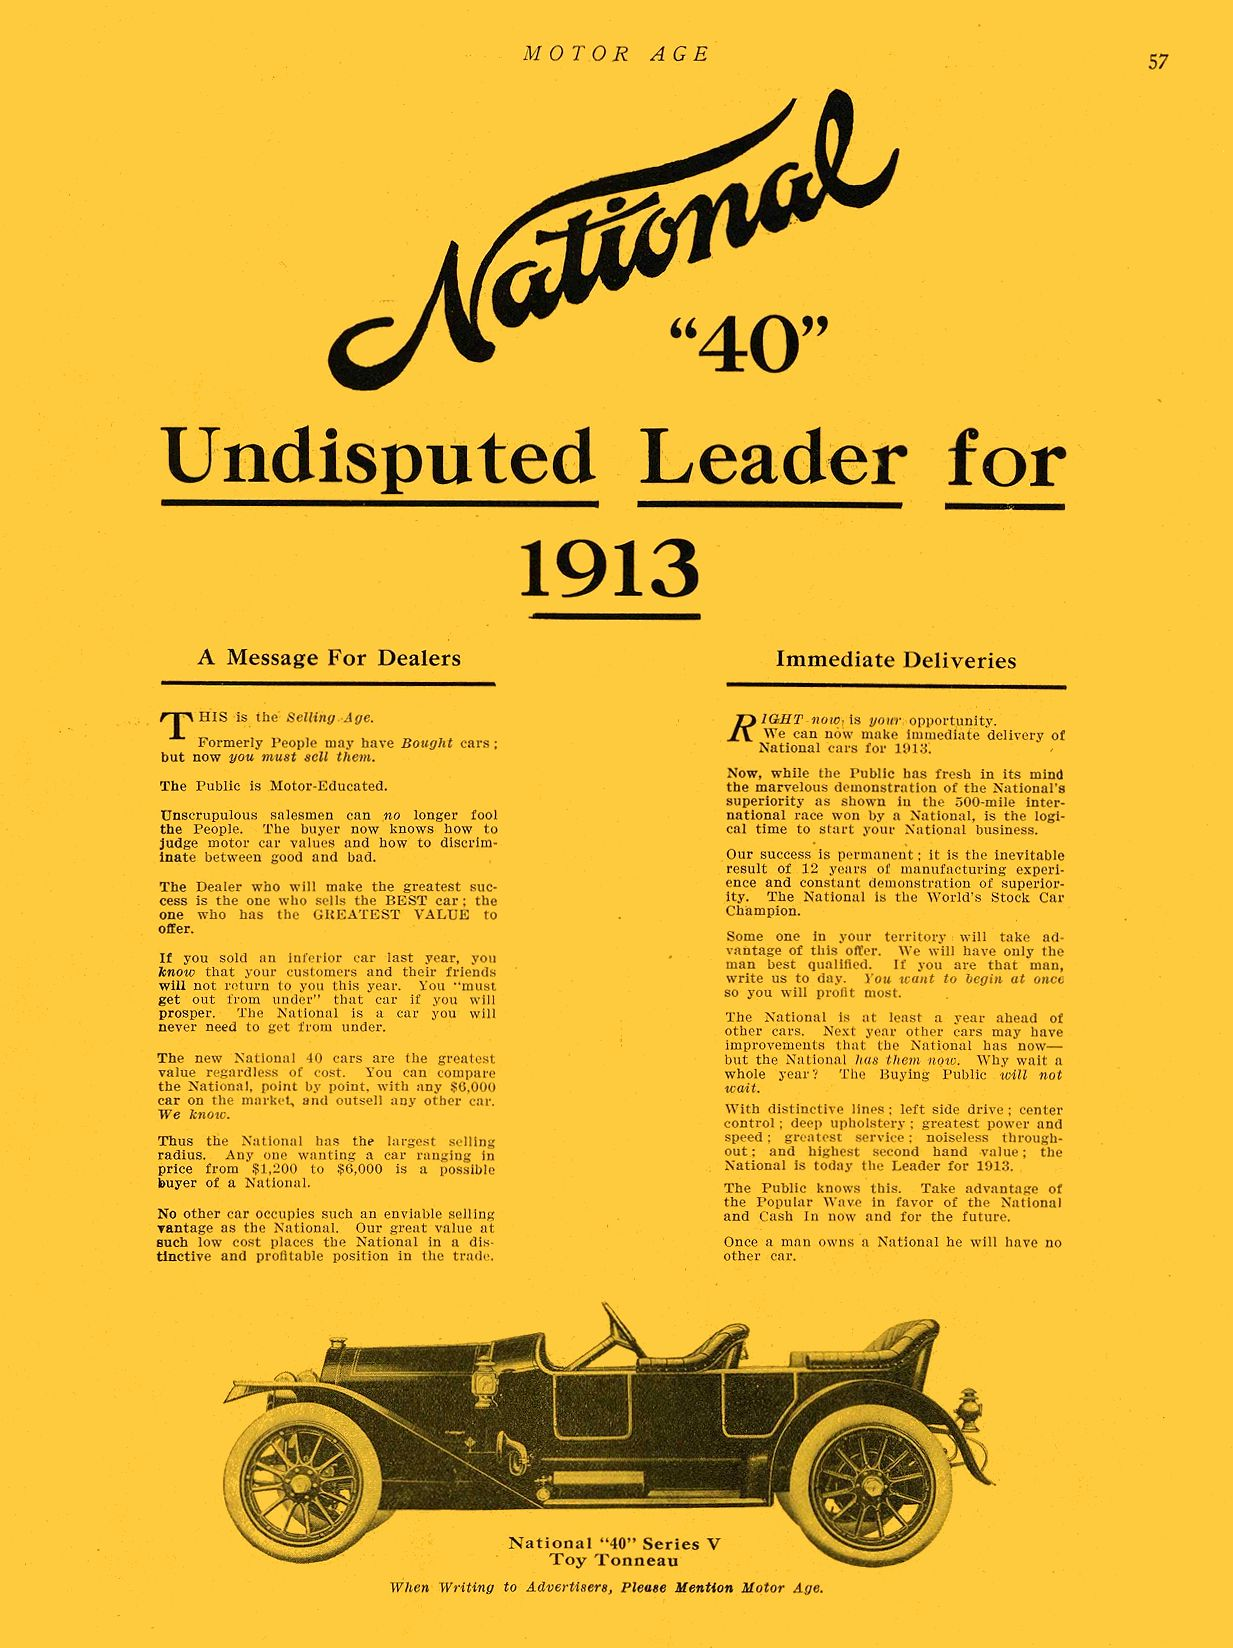 """1912 7 11 NATIONAL National """"40"""" Undisputed Leader for 1913 NATIONAL MOTOR VEHICLE CO. Indianapolis, IND MOTOR AGE July 11, 1912 9″x12″ page 57"""